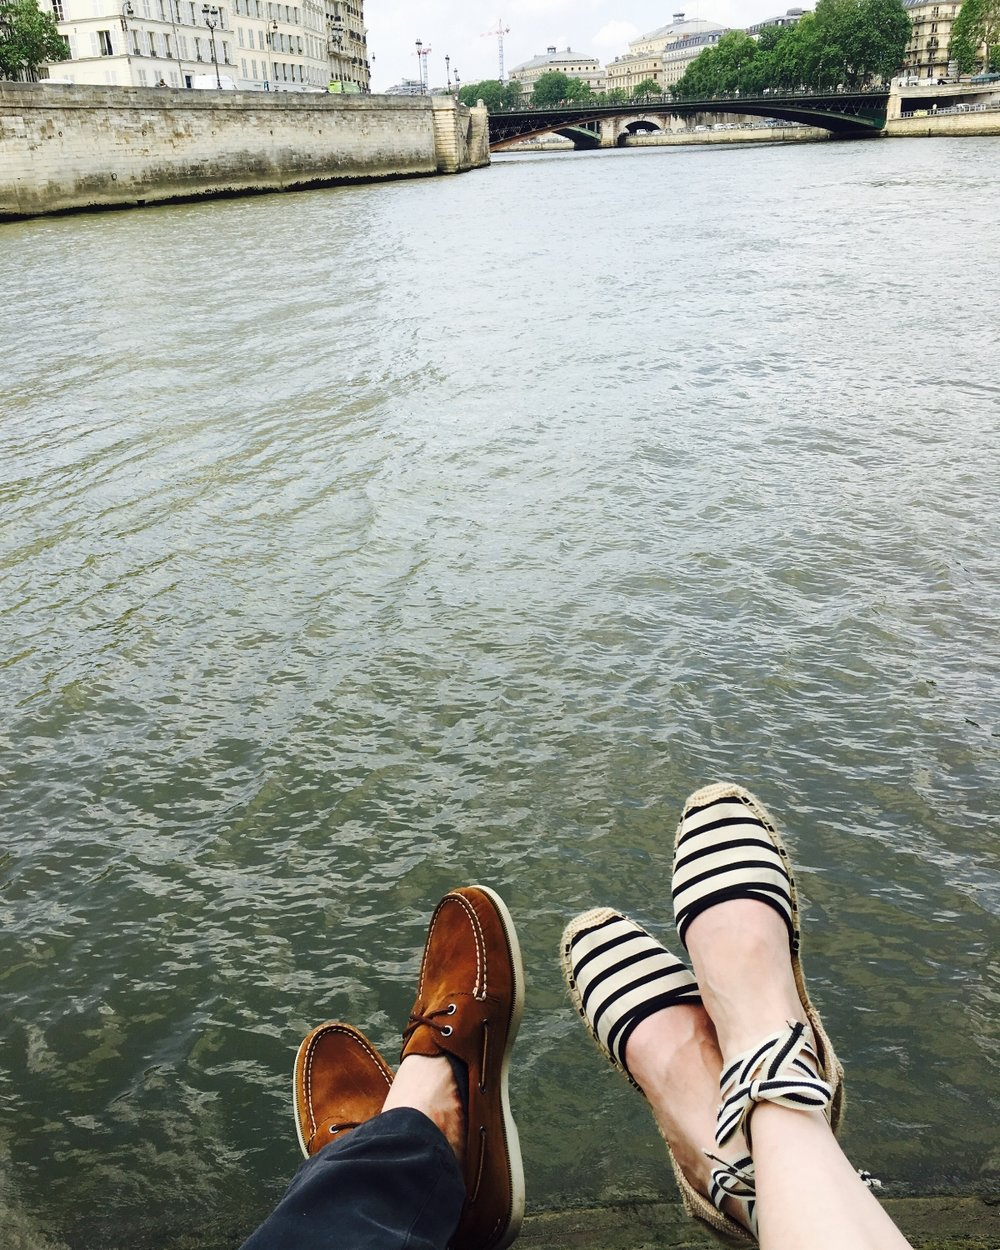 Picnic on the Ile Saint-Louis, Paris #mfrancisdesigntravels